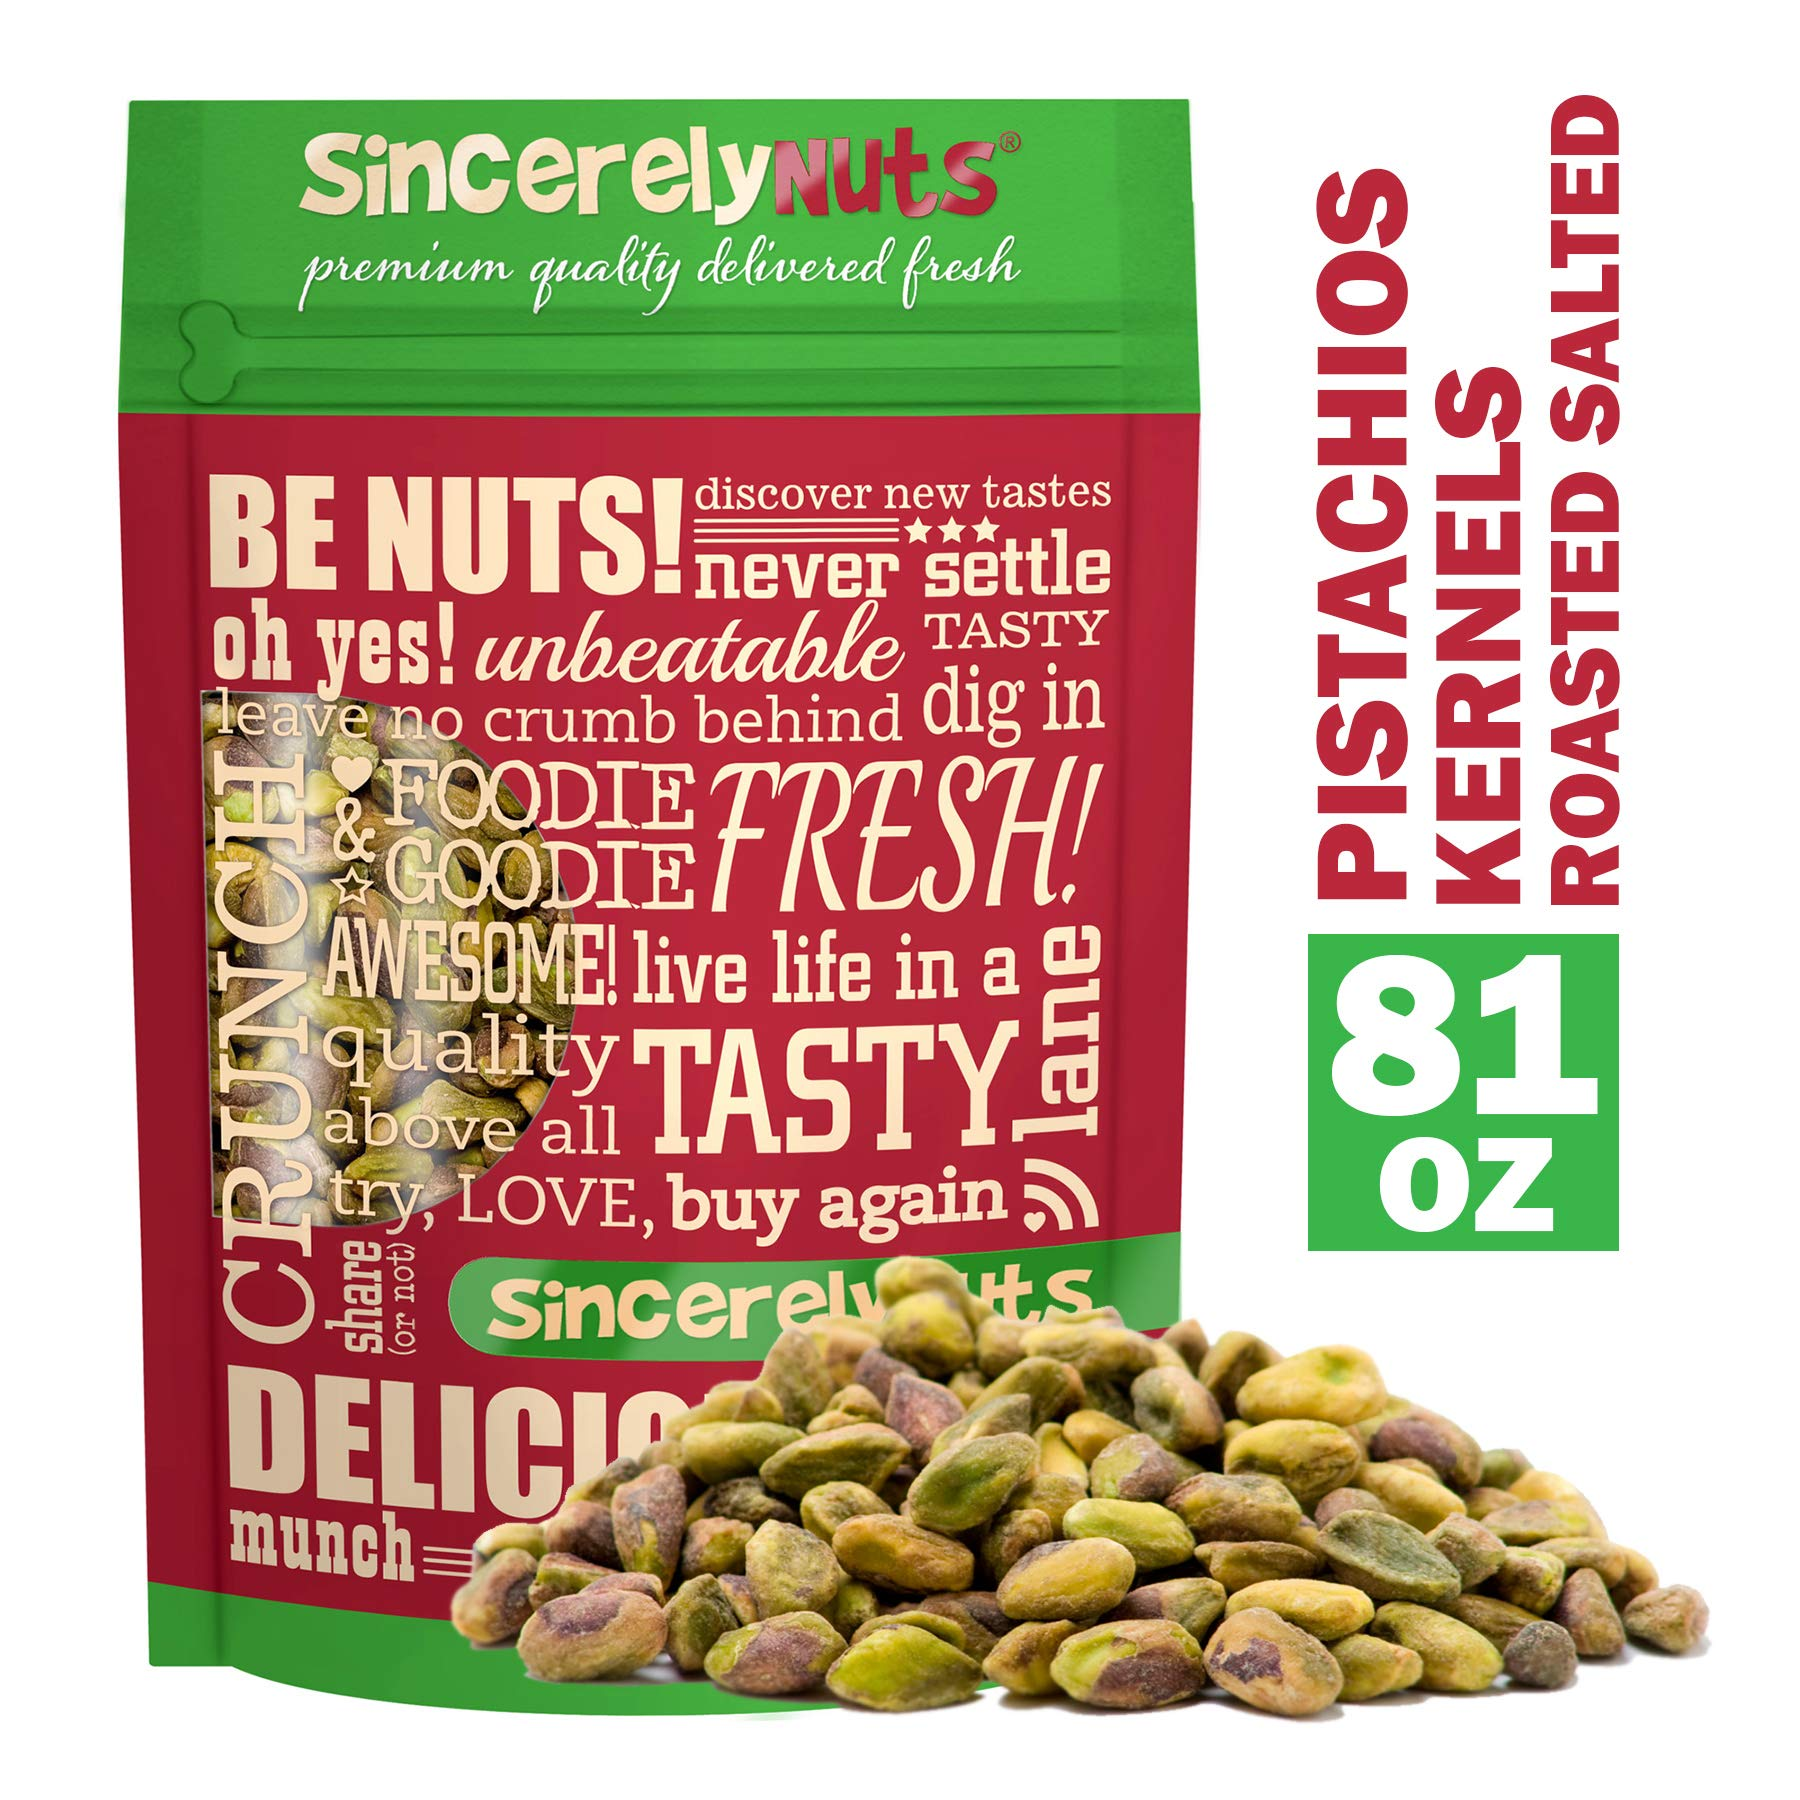 Sincerely Nuts Pistachios Roasted and Salted Kernels (Meats) No Shell - 5 Lb. Bag - | Healthy Snack Food | Great for Cooking | Source of Fiber & Protein | Gourmet Flavor | Vegan, Kosher & Gluten Free by Sincerely Nuts